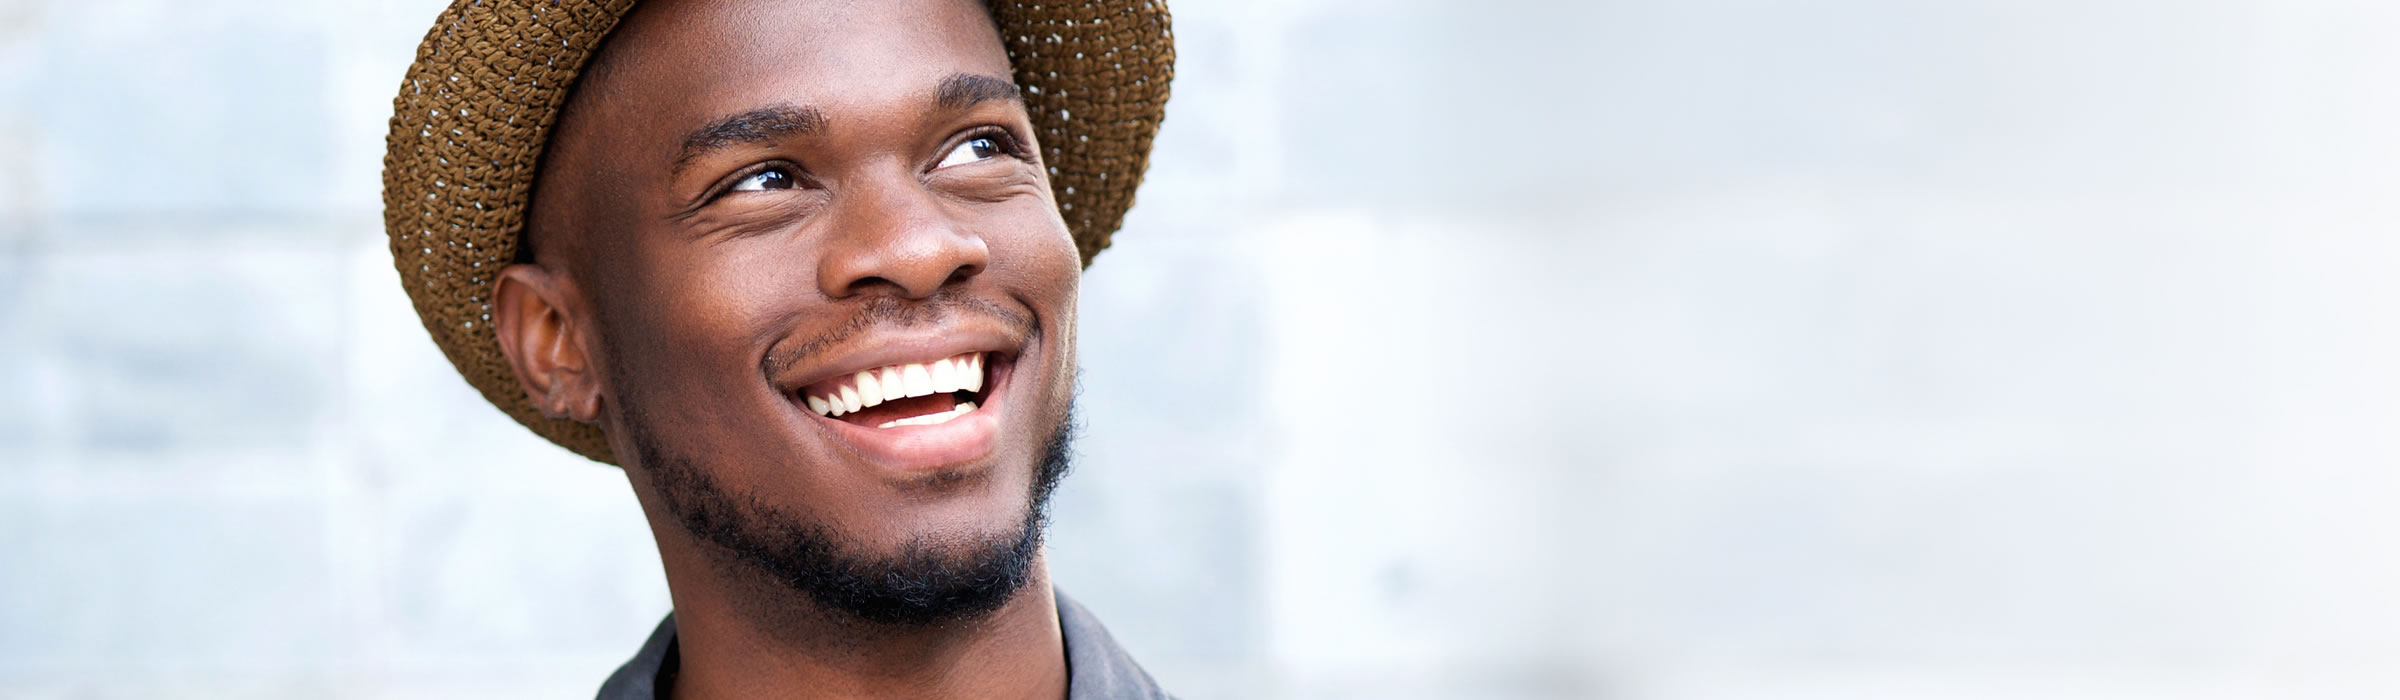 Young man wearing hat smiling. Dental implant gallery for our Watford dentist, Senova Dental Studios in Hertfordshire